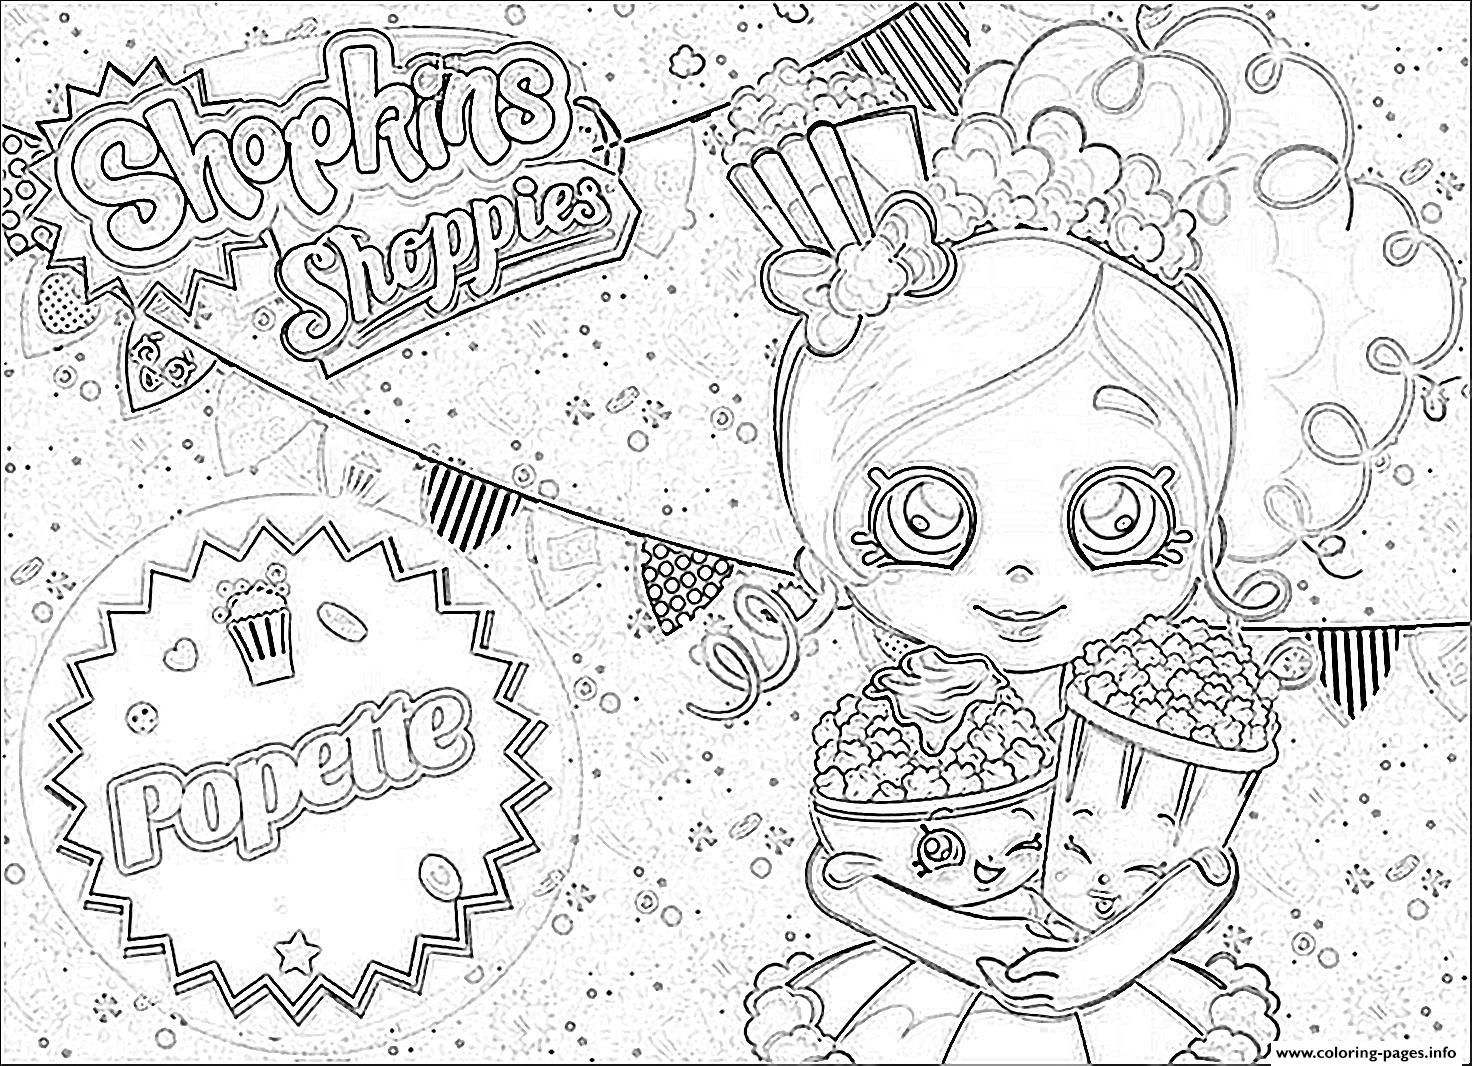 shopkins popette official coloring pages free printable